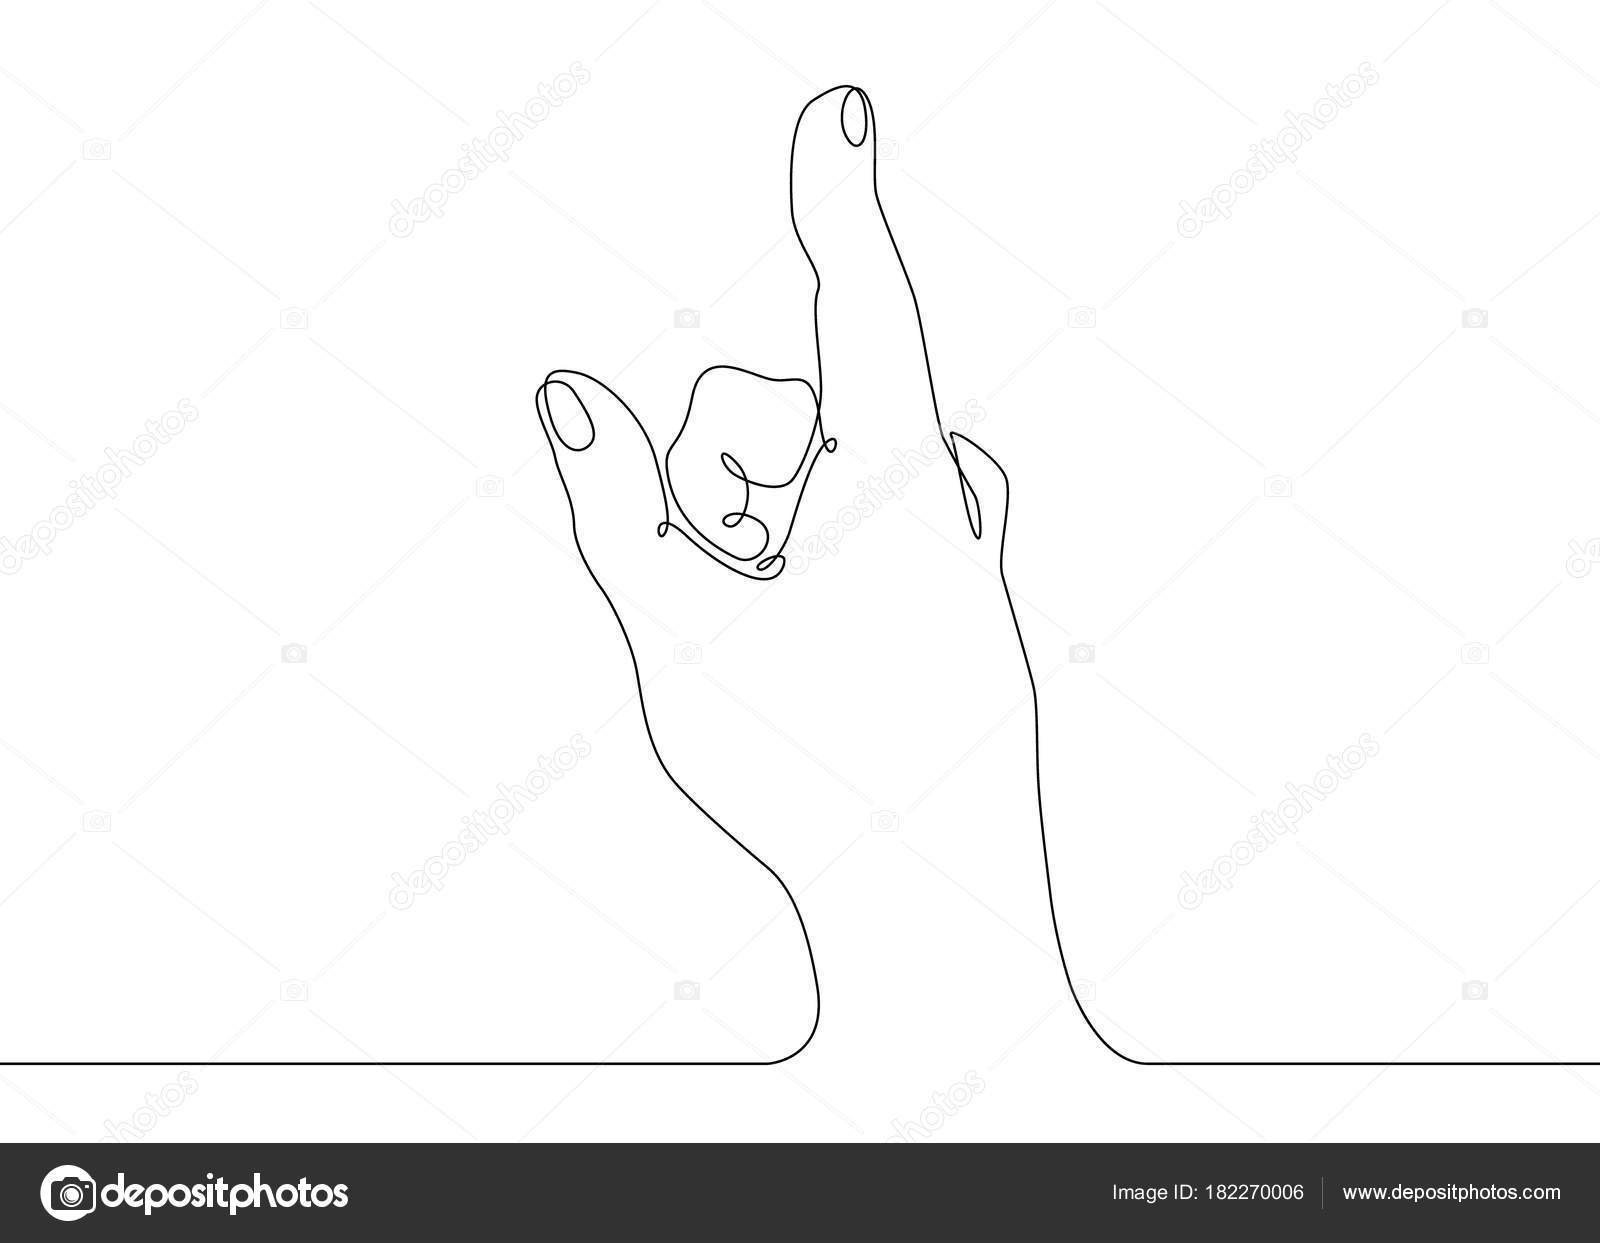 One Line Ascii Art Thumbs Up : Line drawing of hand pointing arm by